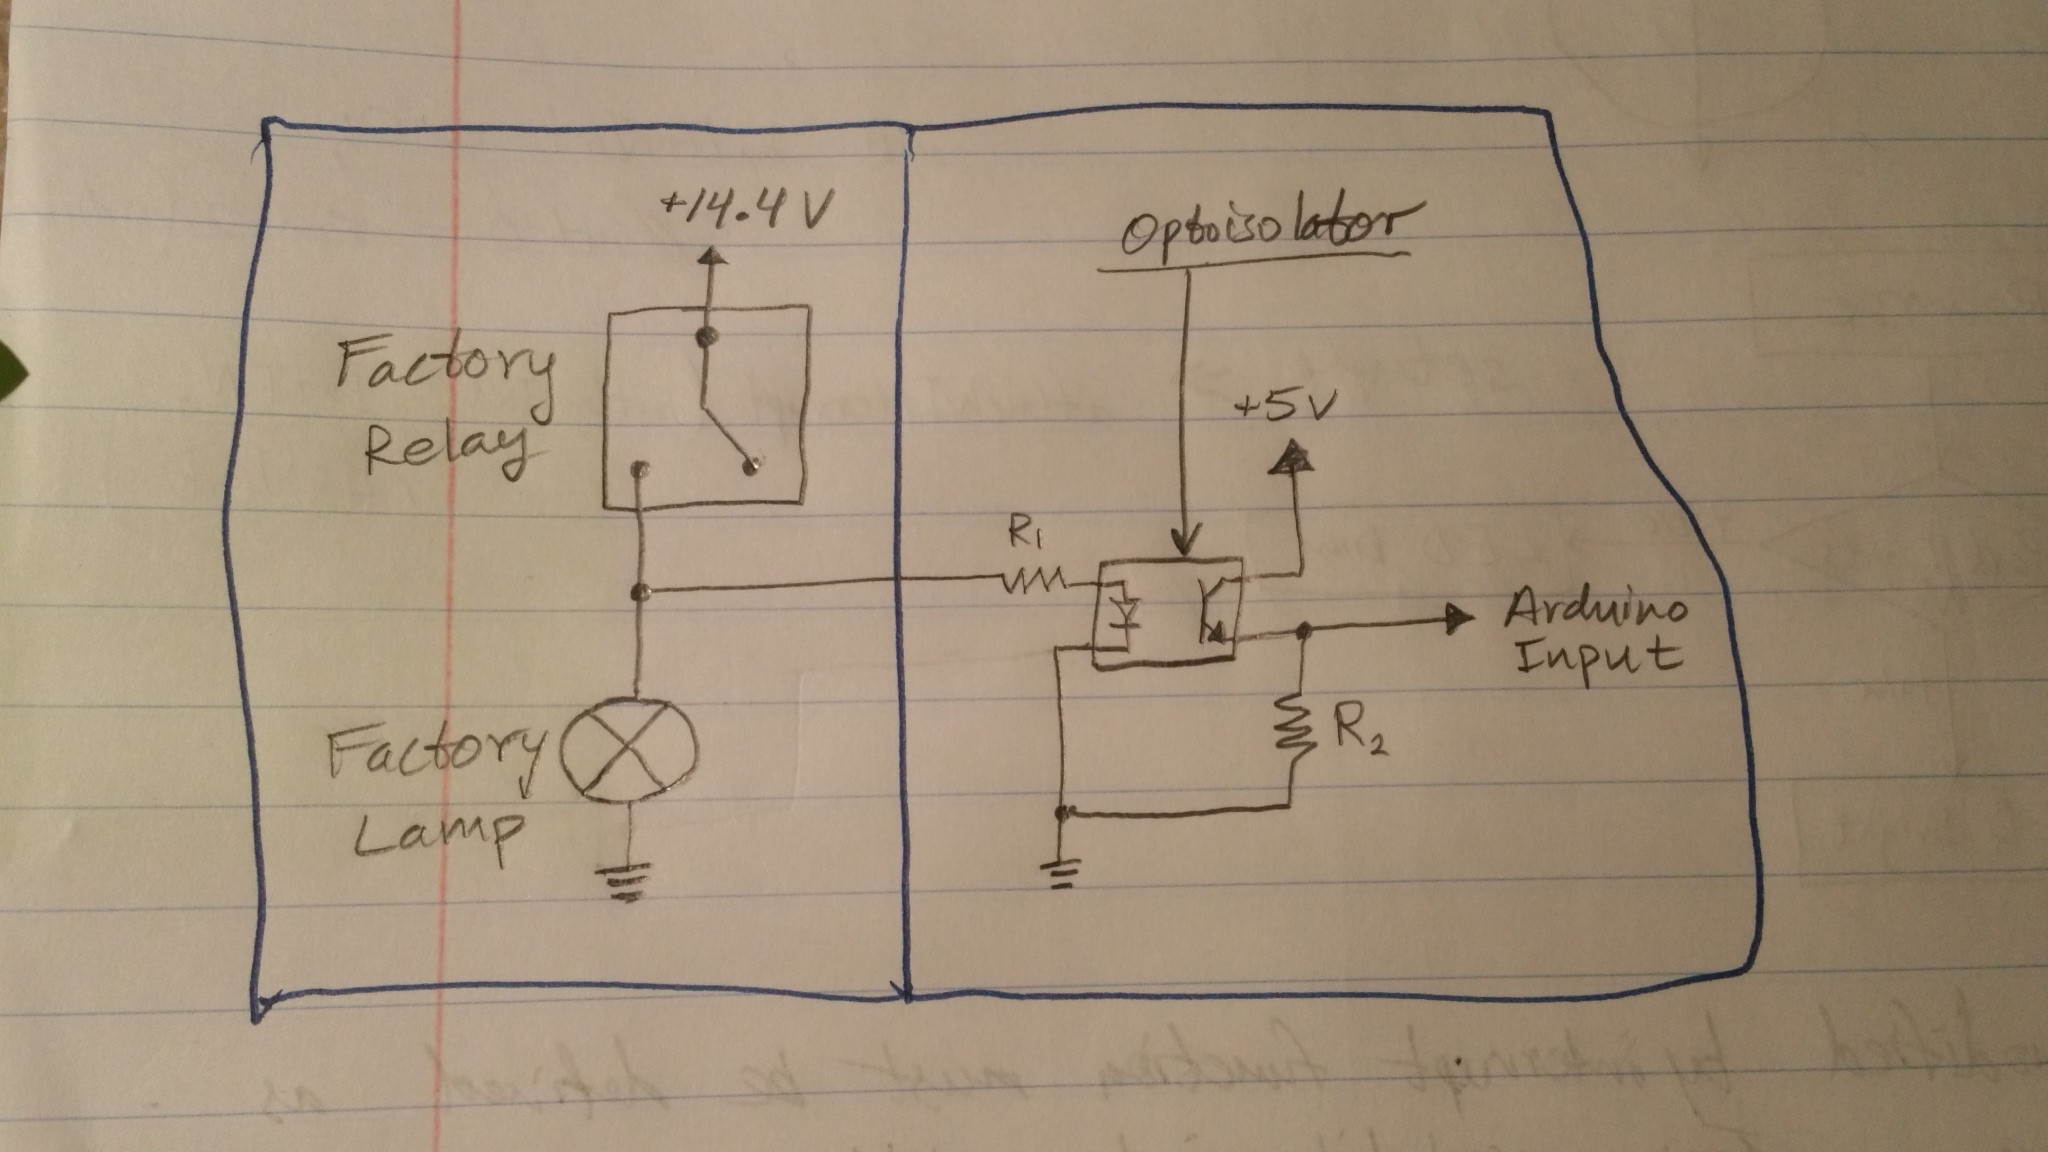 Isolator Switch Wiring Diagram Furthermore Opto Isolator Circuit